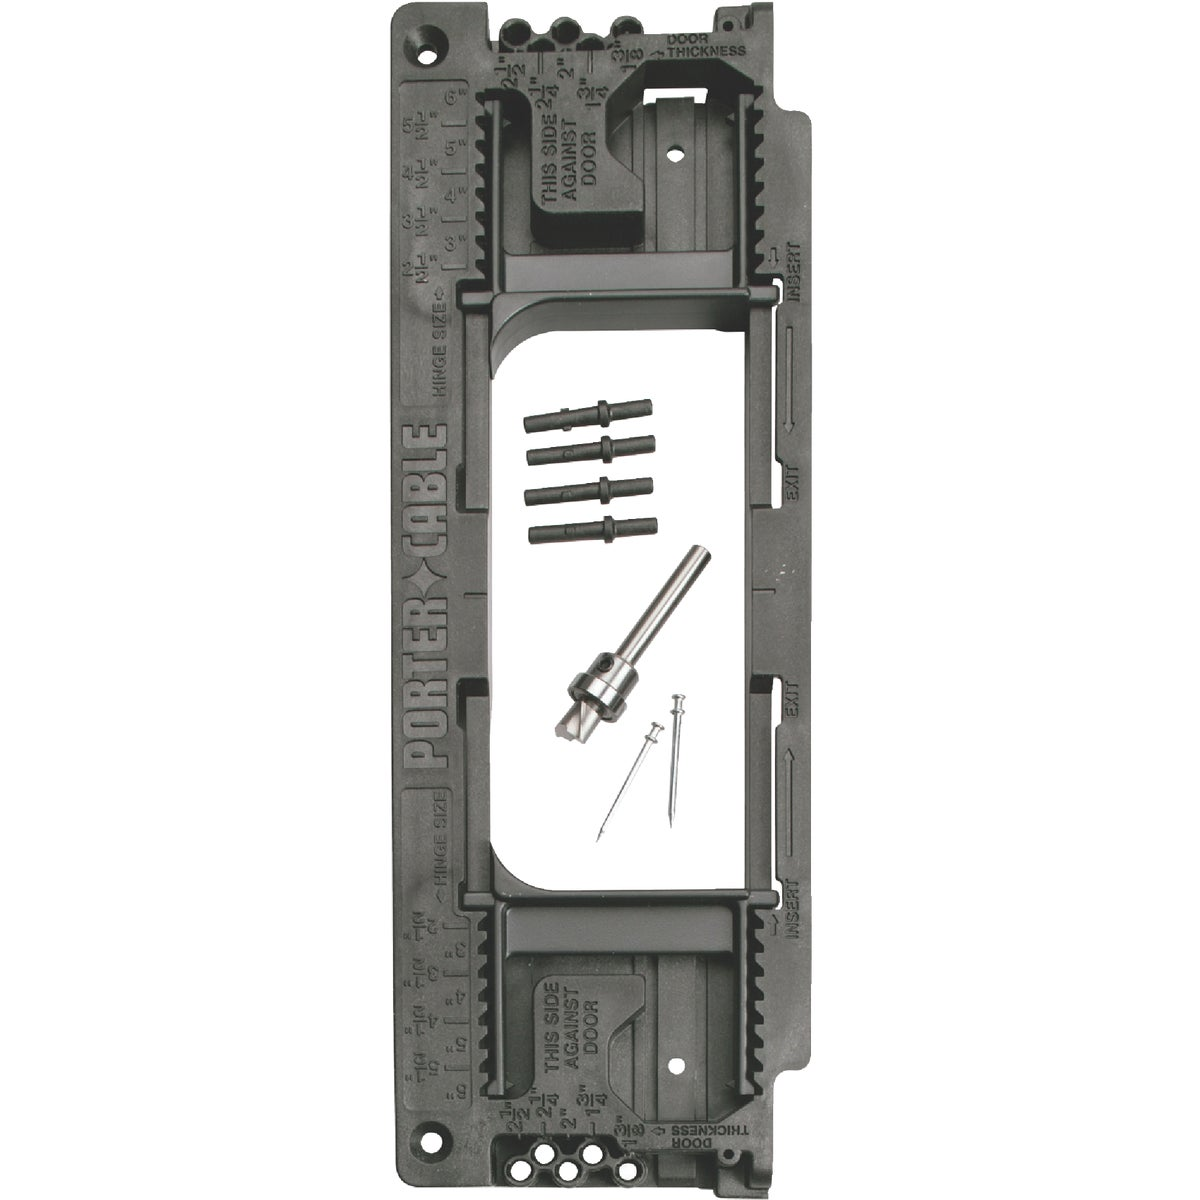 DOOR HINGE TEMPLATE - 59370 by DeWalt